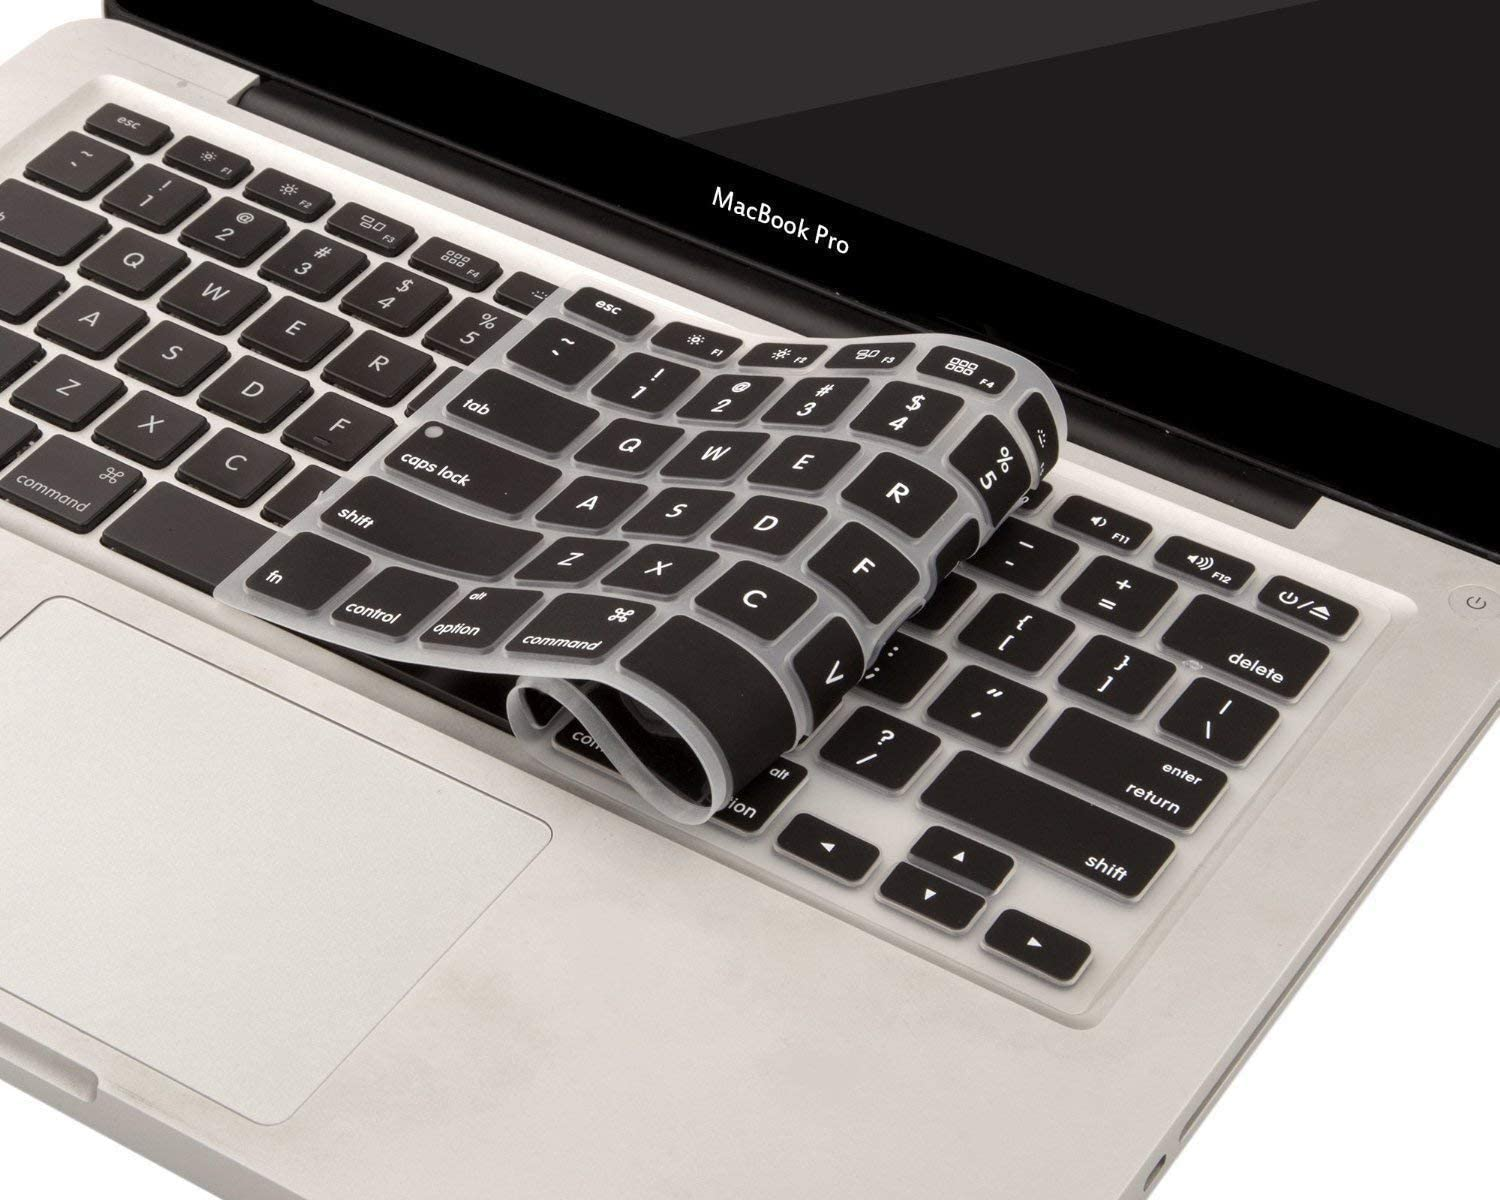 Saco Silicone Keyboard Protector Skin Cover for/Apple MacBook Air MJVE2HN//A 13-inch Laptop/-Black with Clear